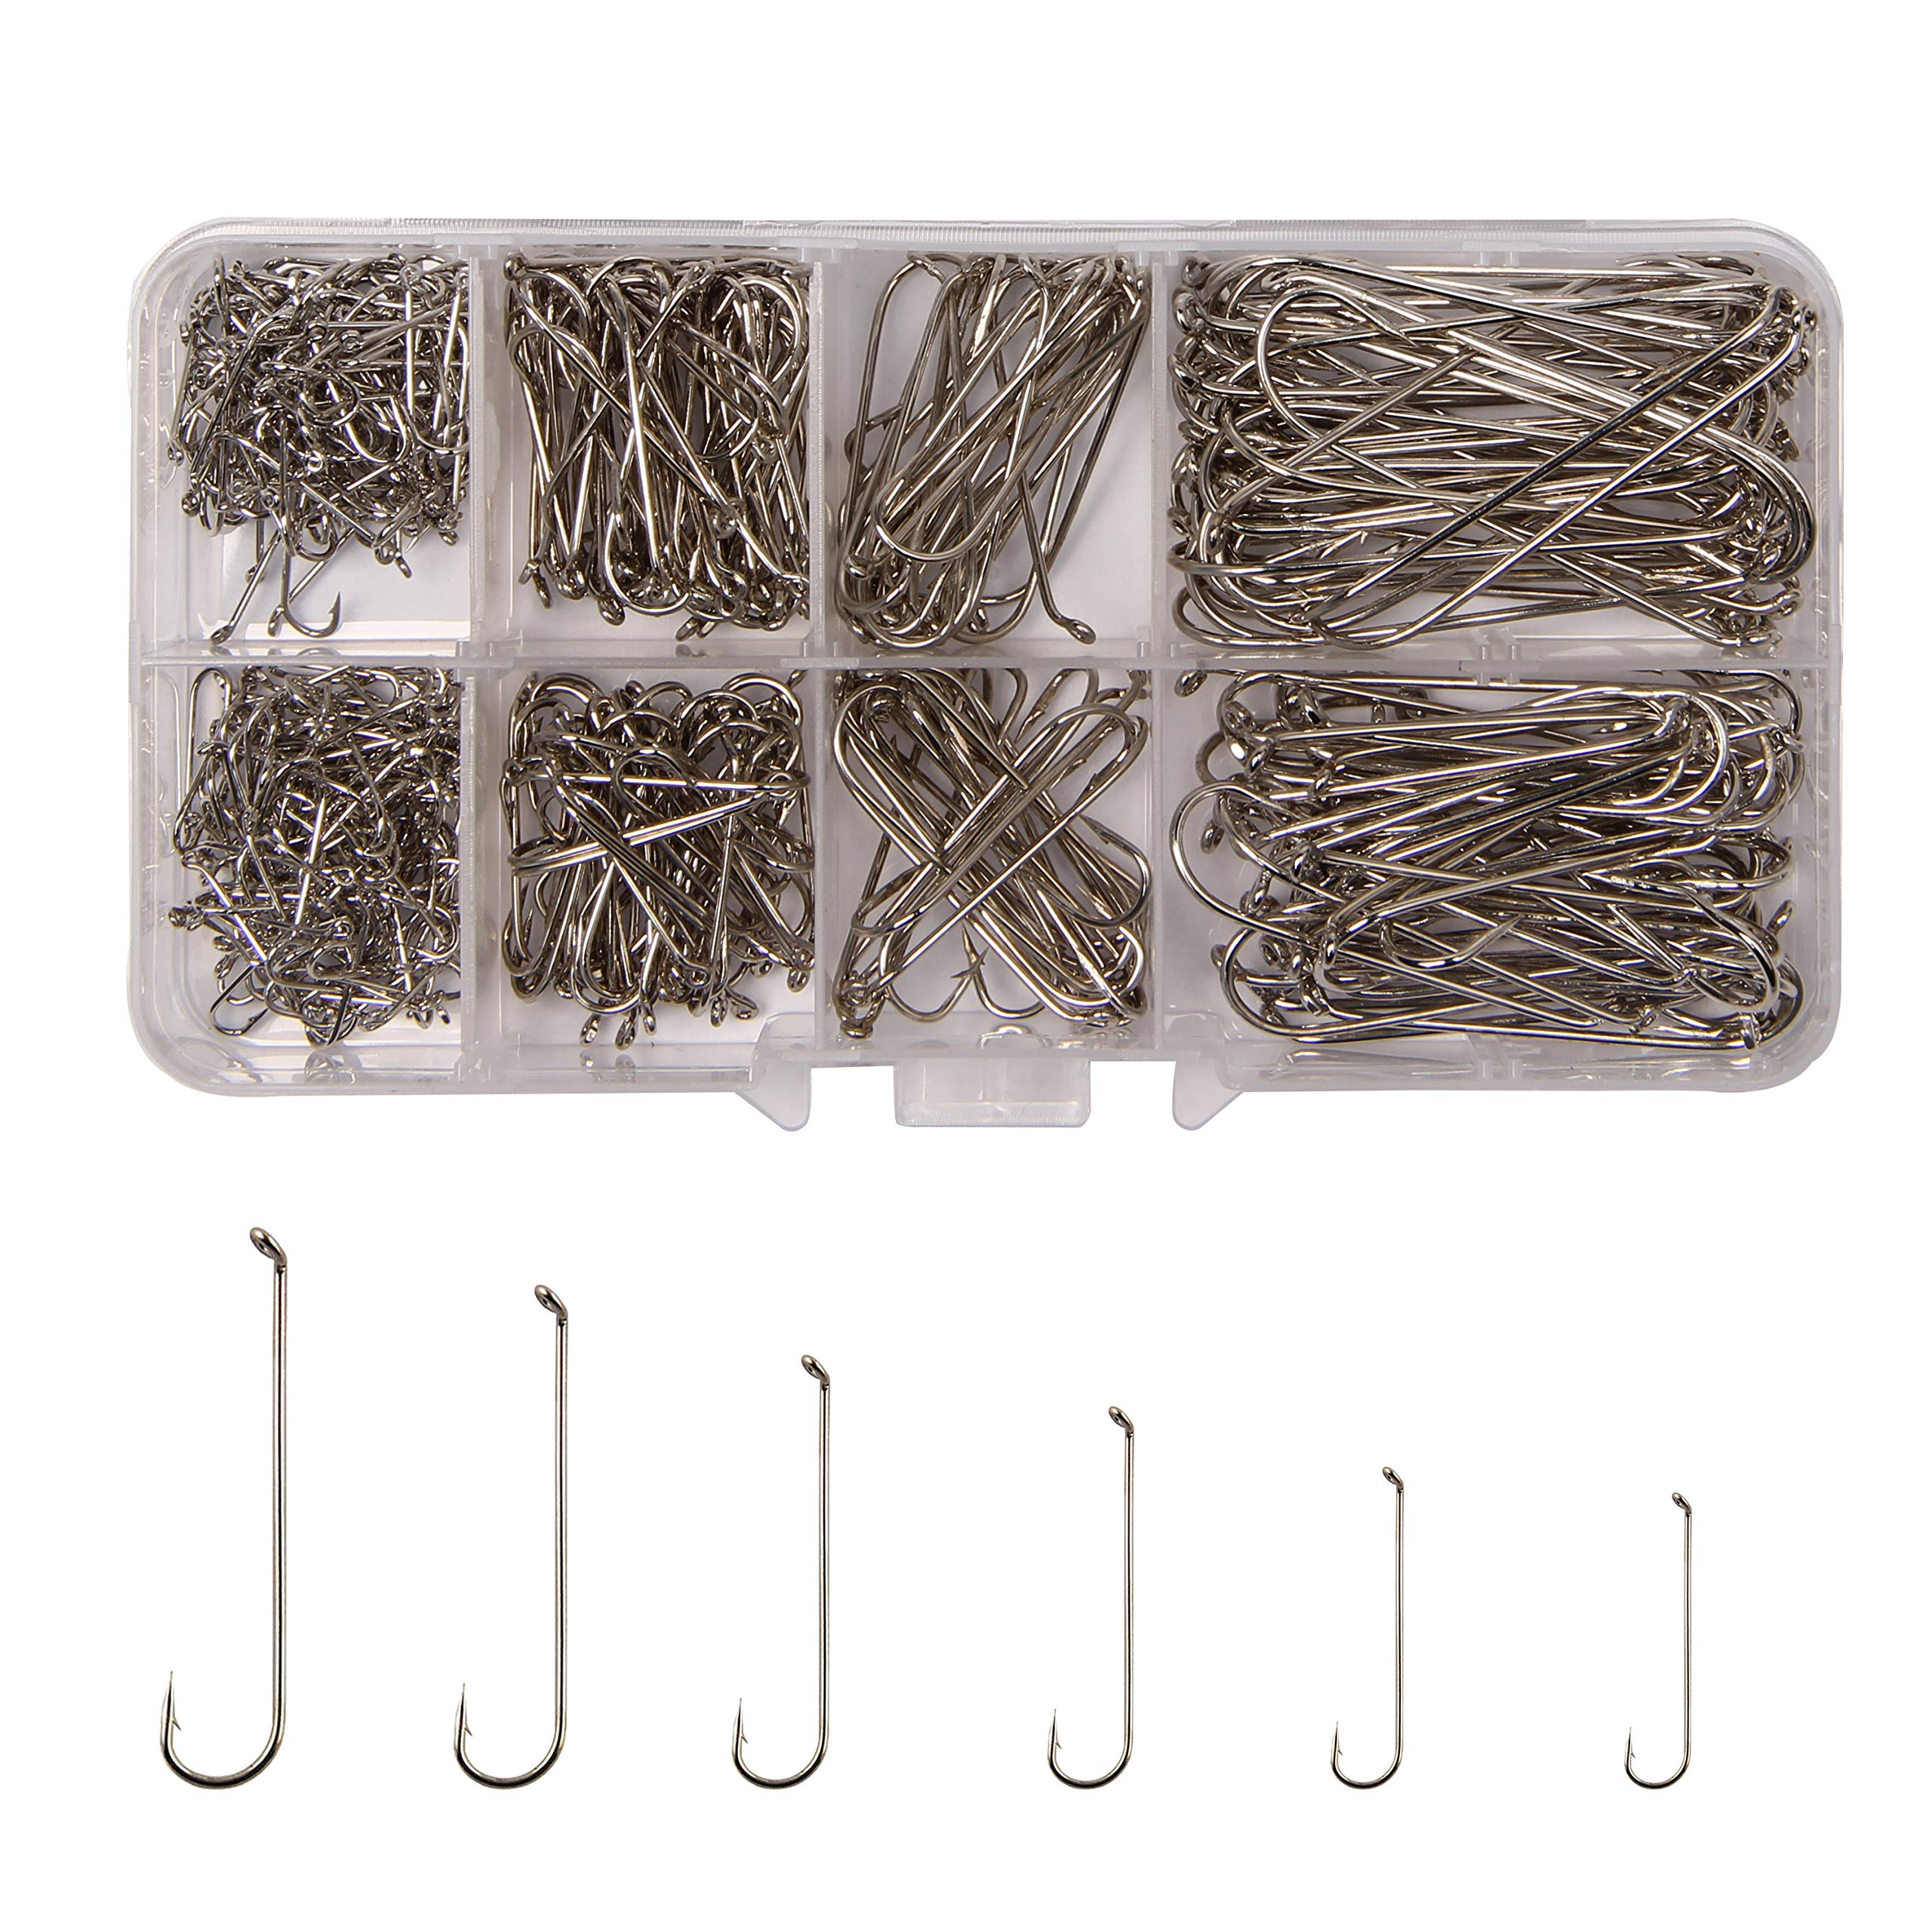 AGOOL 450pcs 79580 Fishing Fly Hooks Fly Tying Hooks Tackle Aberdeen Hooks Long Shank High Carbon Steel Streamer Dry Nymph Pupa& Larva Jig for Freshwater Saltwater Set Box